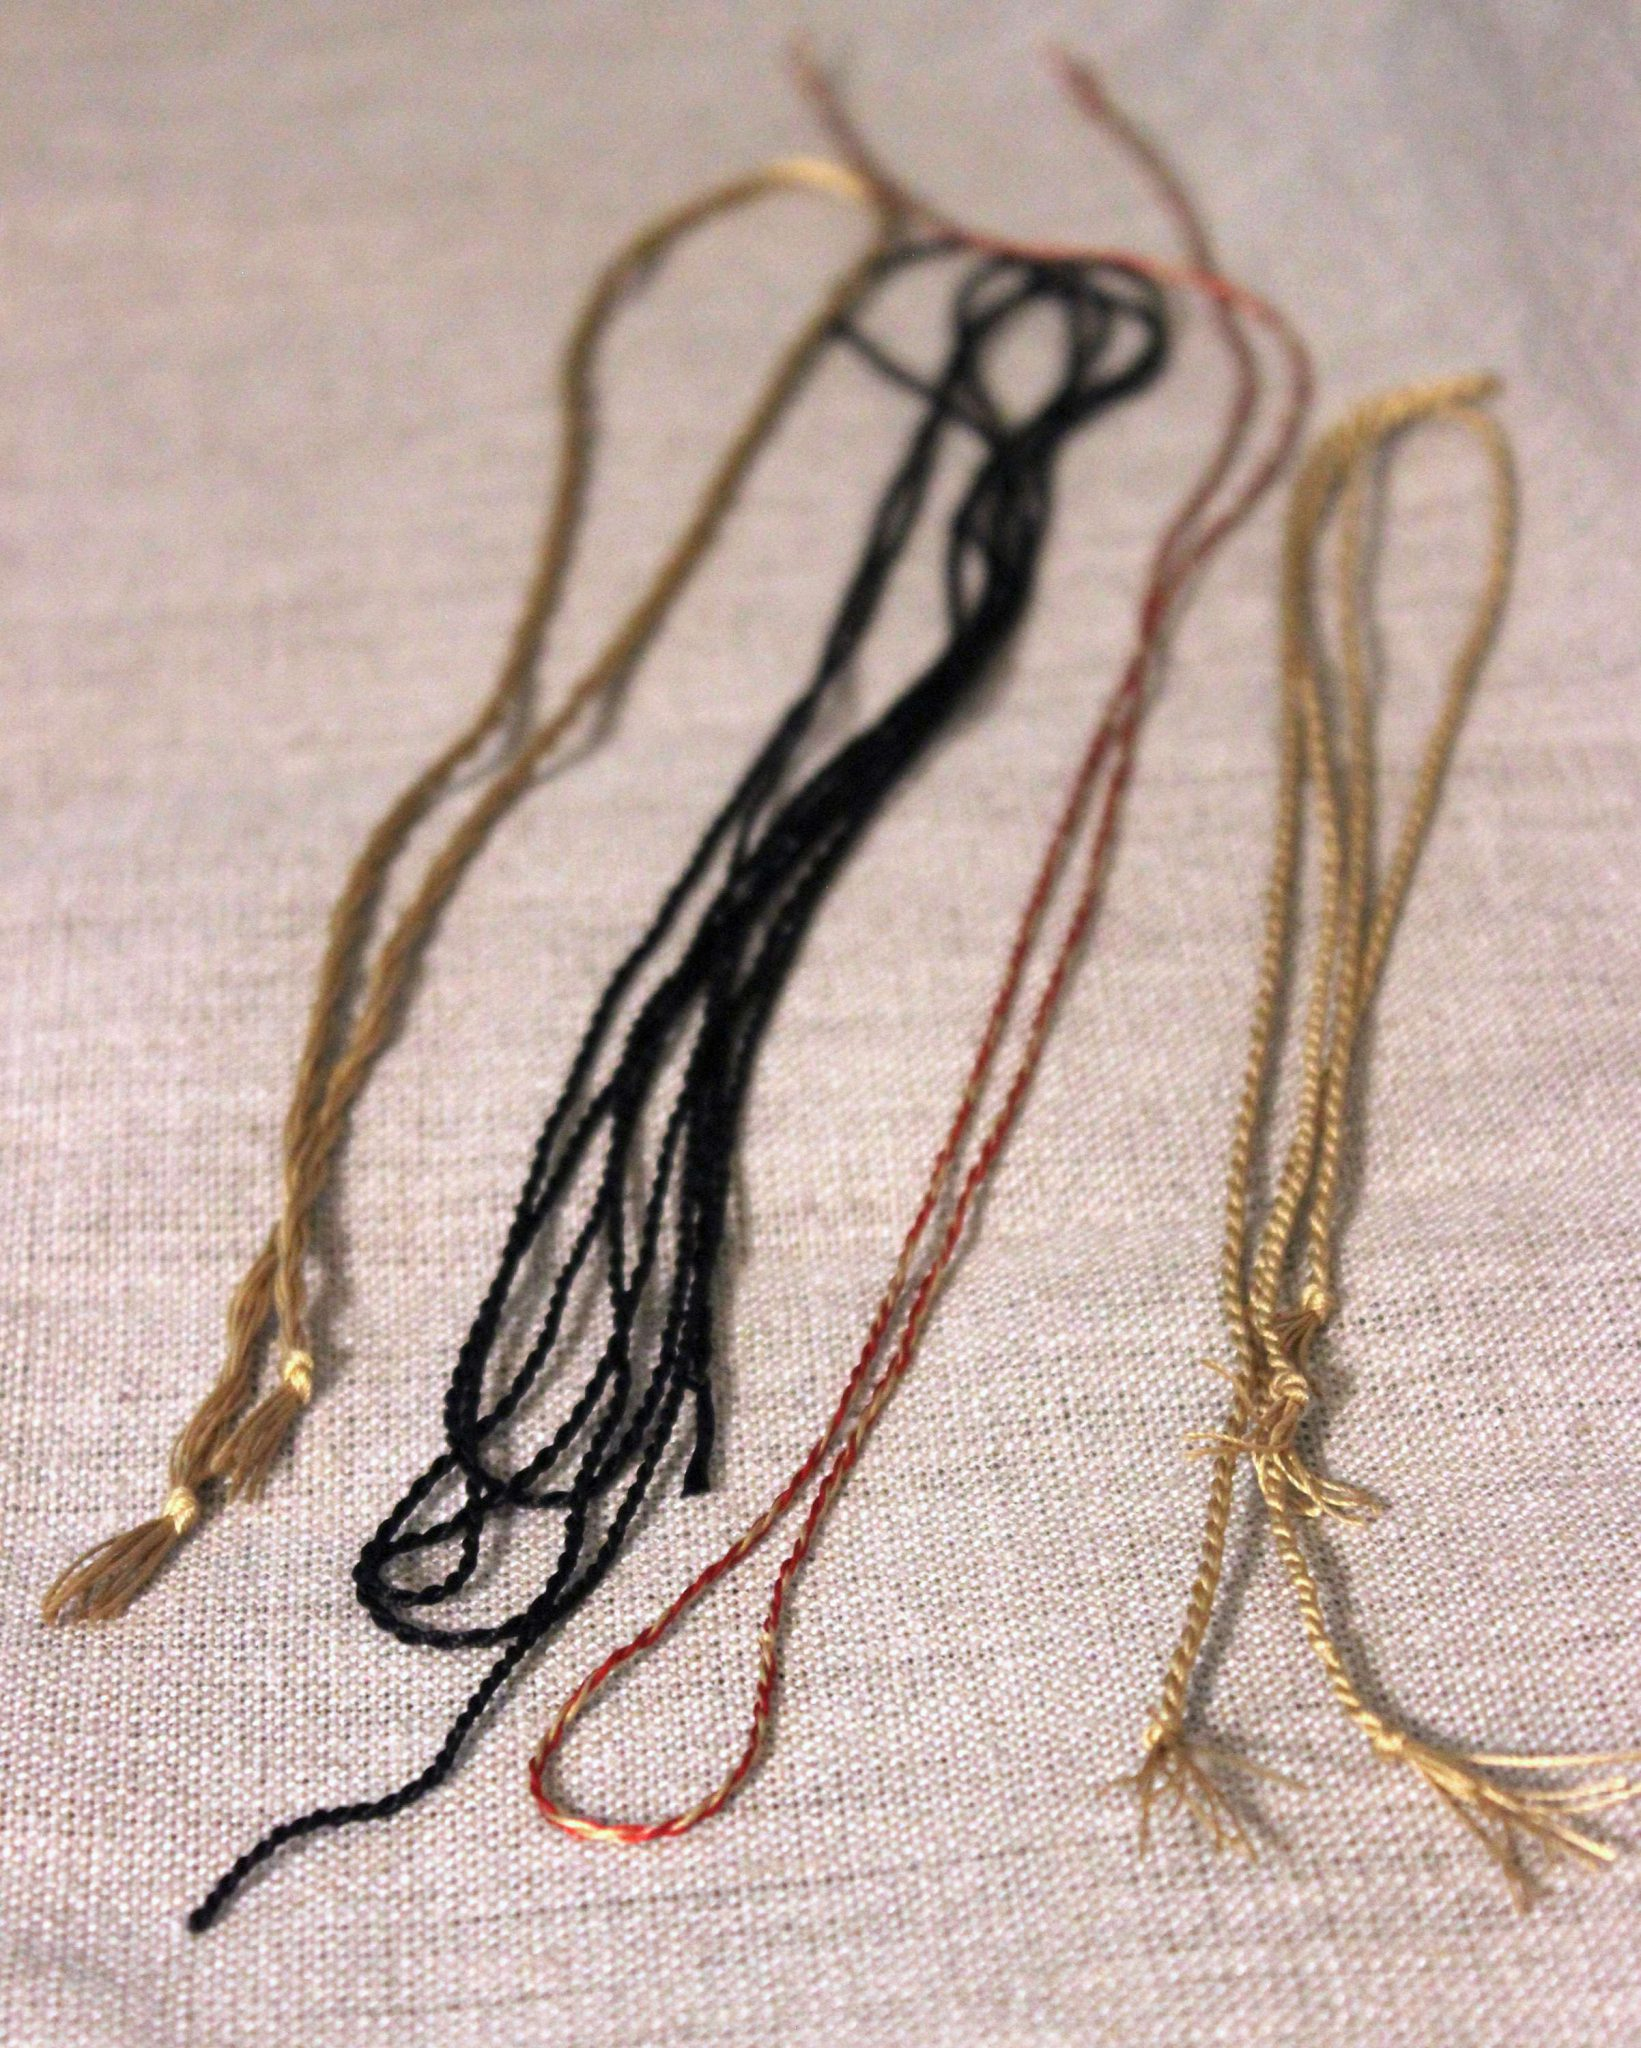 Gold black and red silk cords